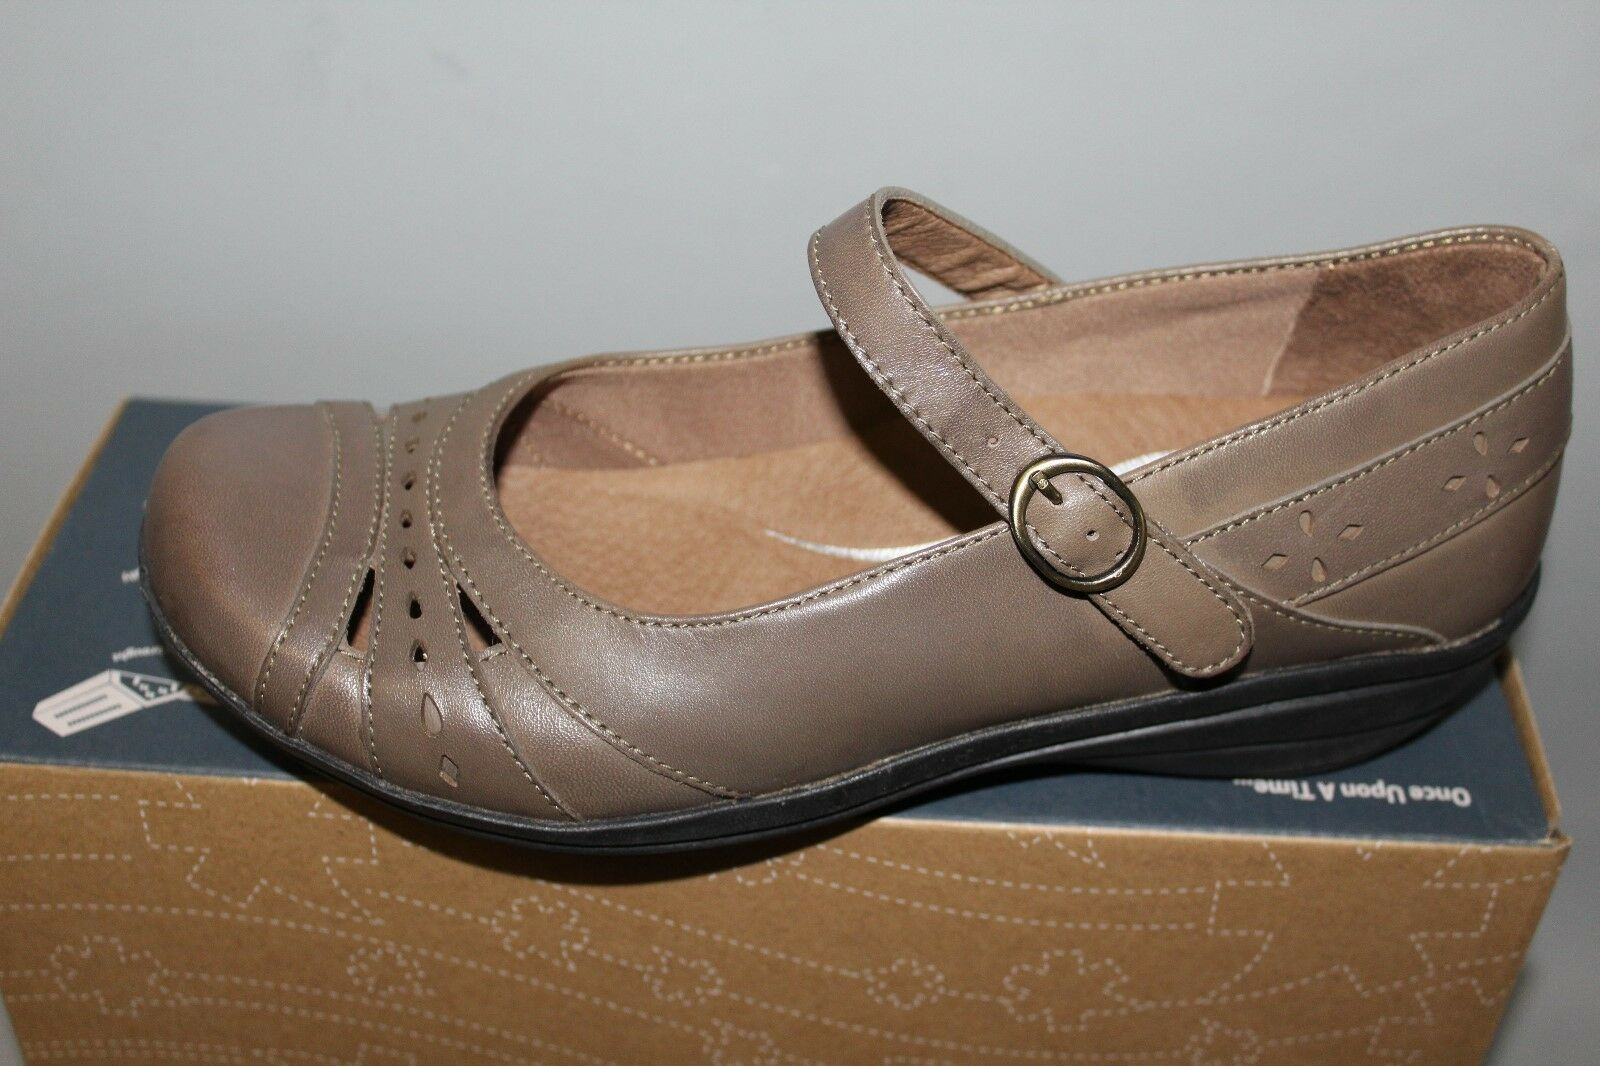 NEW damen Dansko Mathilda Eur 41   US 10.5-11 Dk Taupe Comfortable Mary Janes